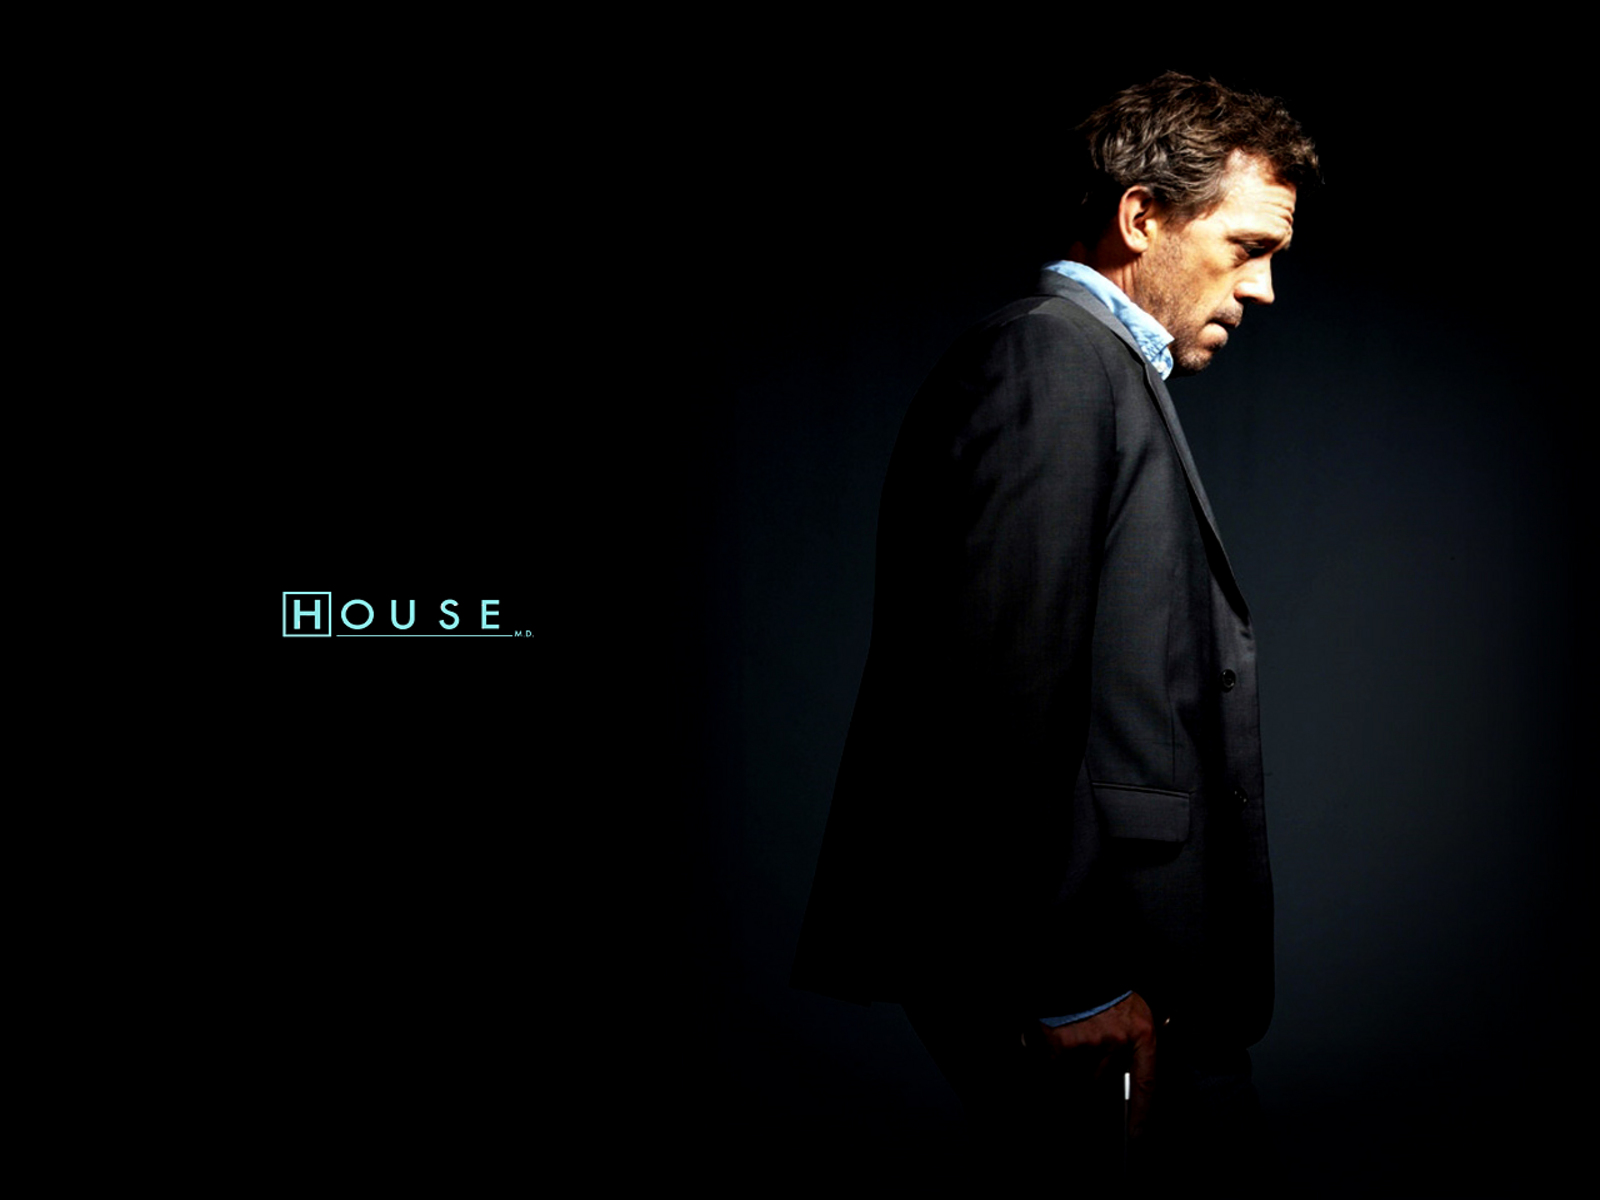 download wallpaper dr house - photo #8